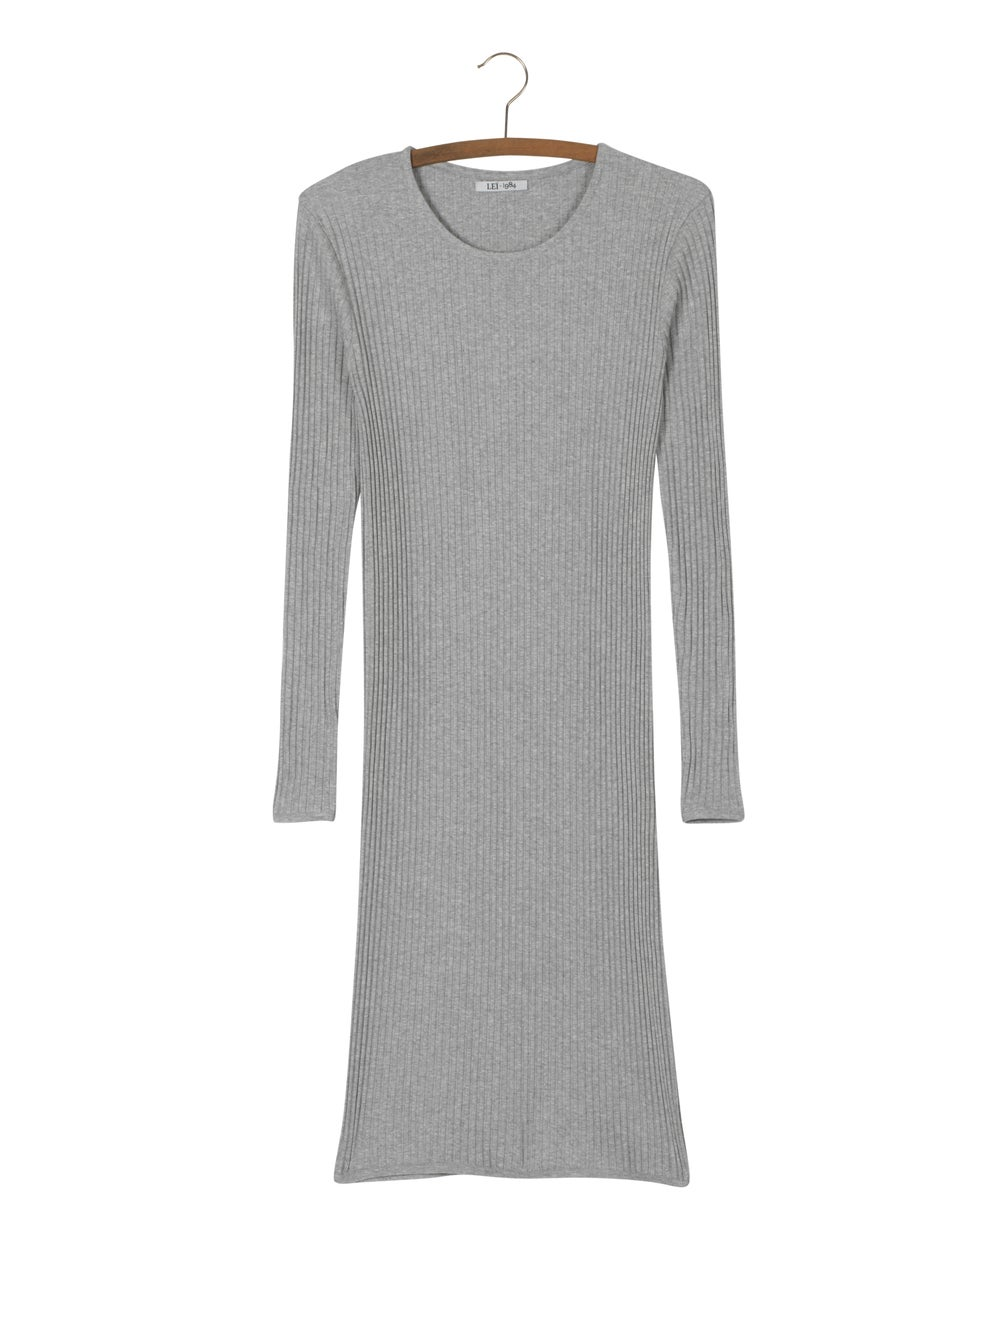 Image of Robe tube côtes TAMARA 69€ -50%